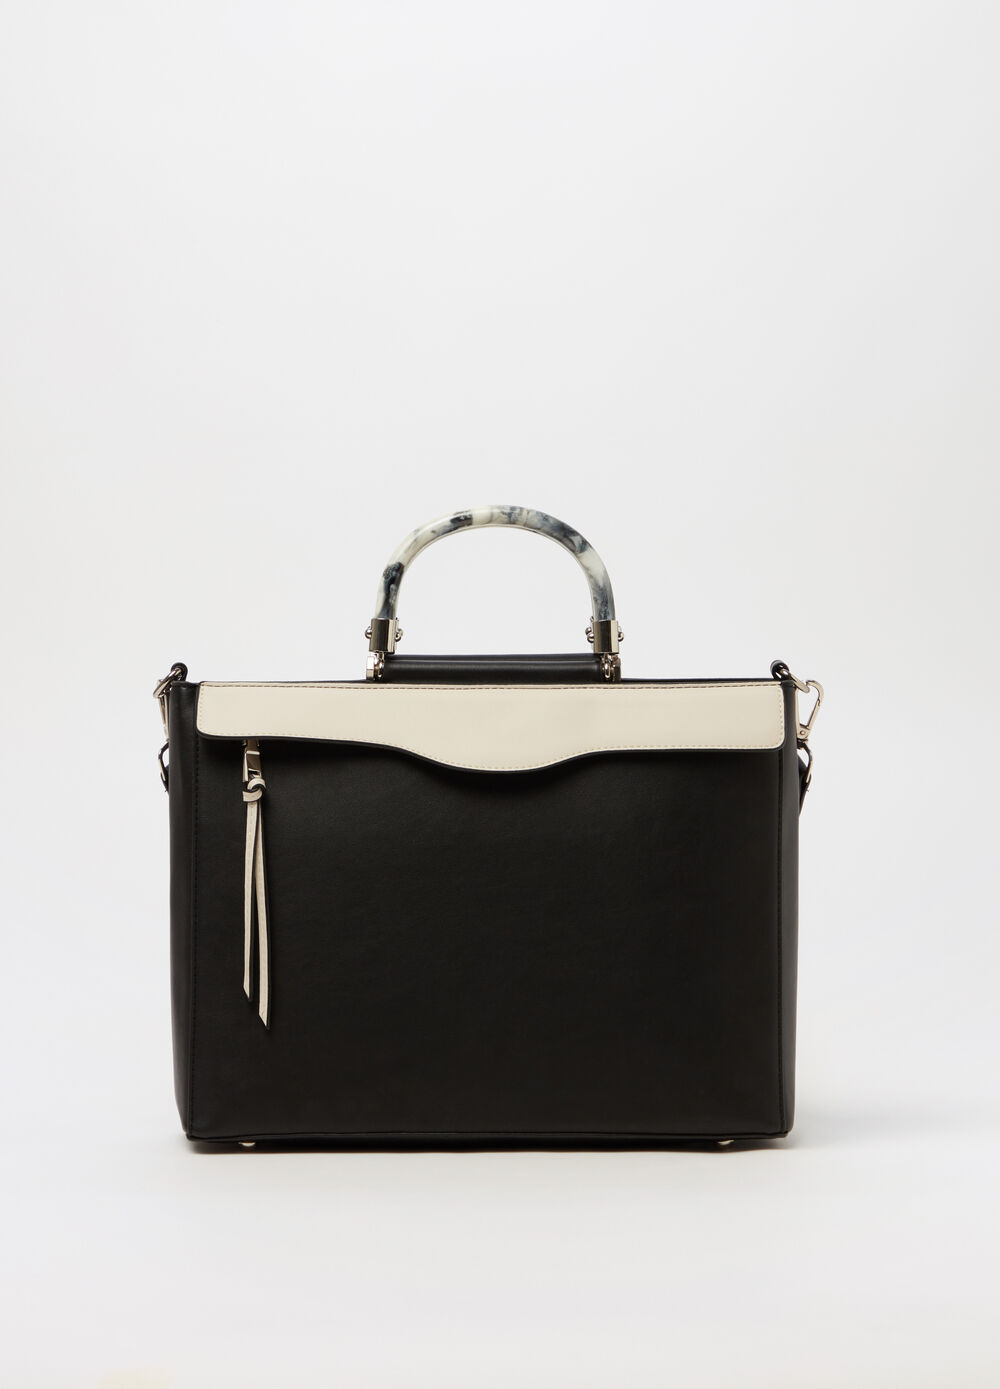 Handbag with contrasting solid handles